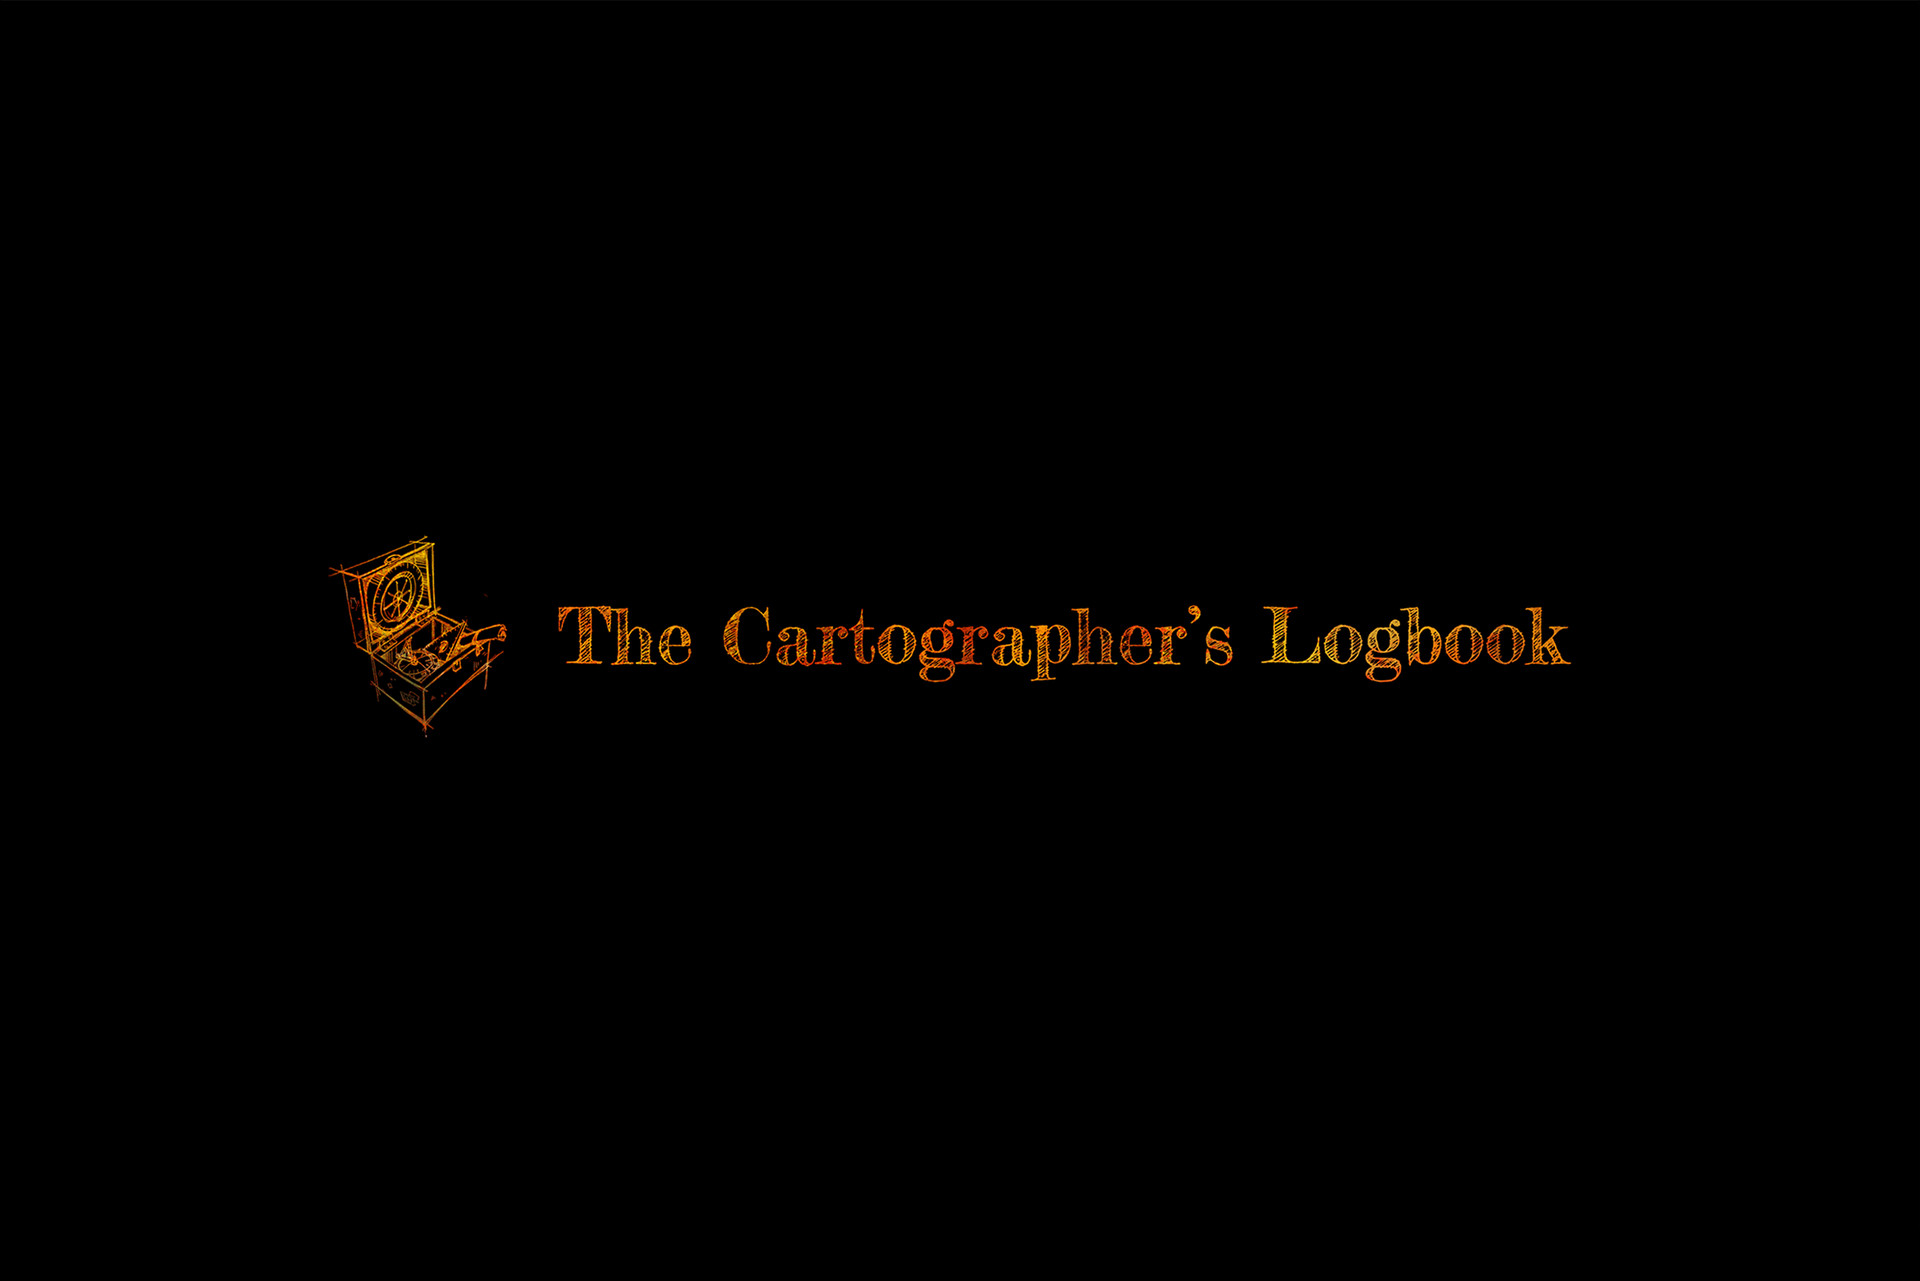 001_cartographer_format_forweb2019_title